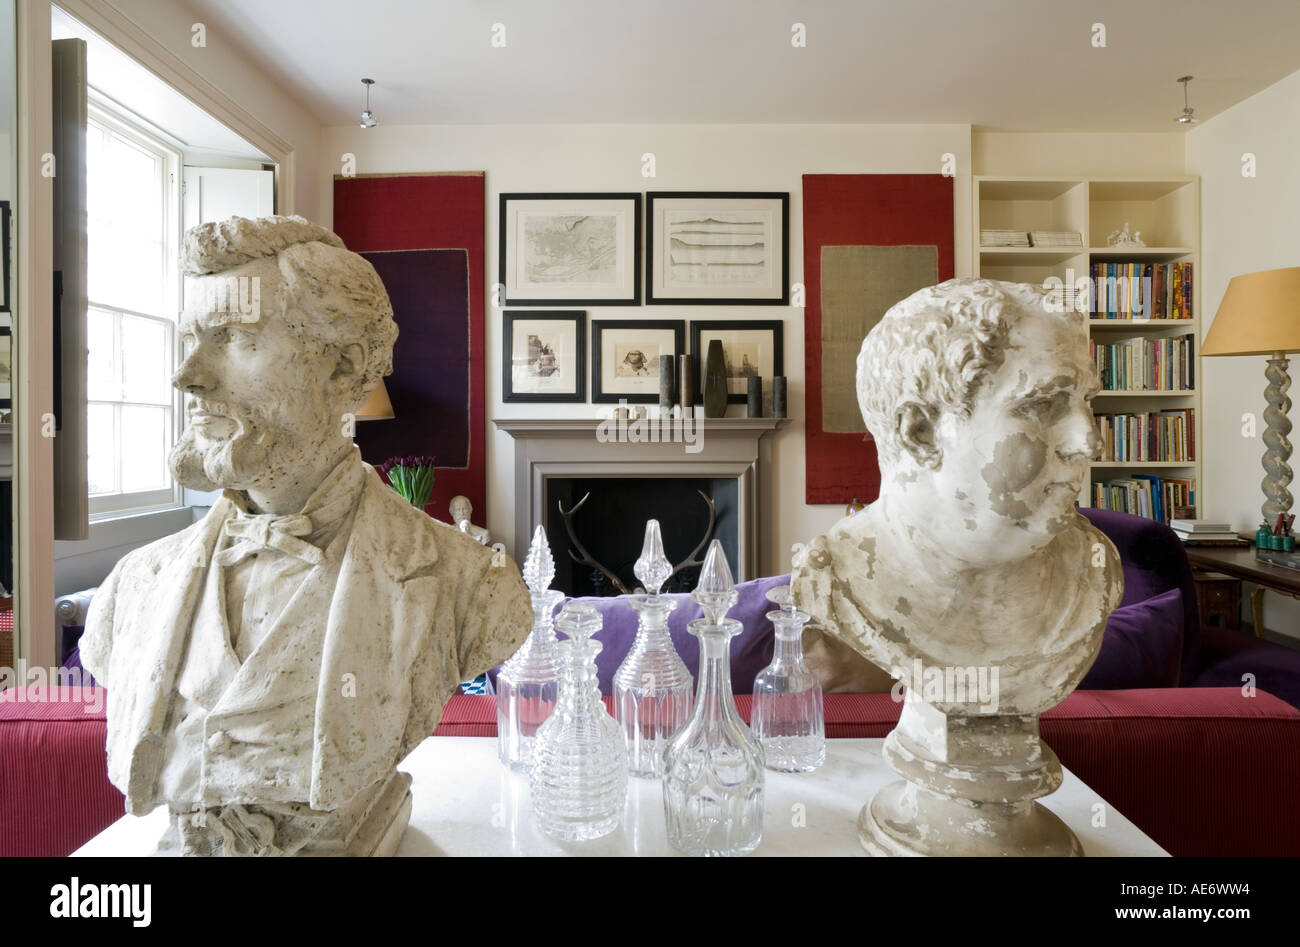 Plaster busts and glass decanters on a marble top in an living room - Stock Image